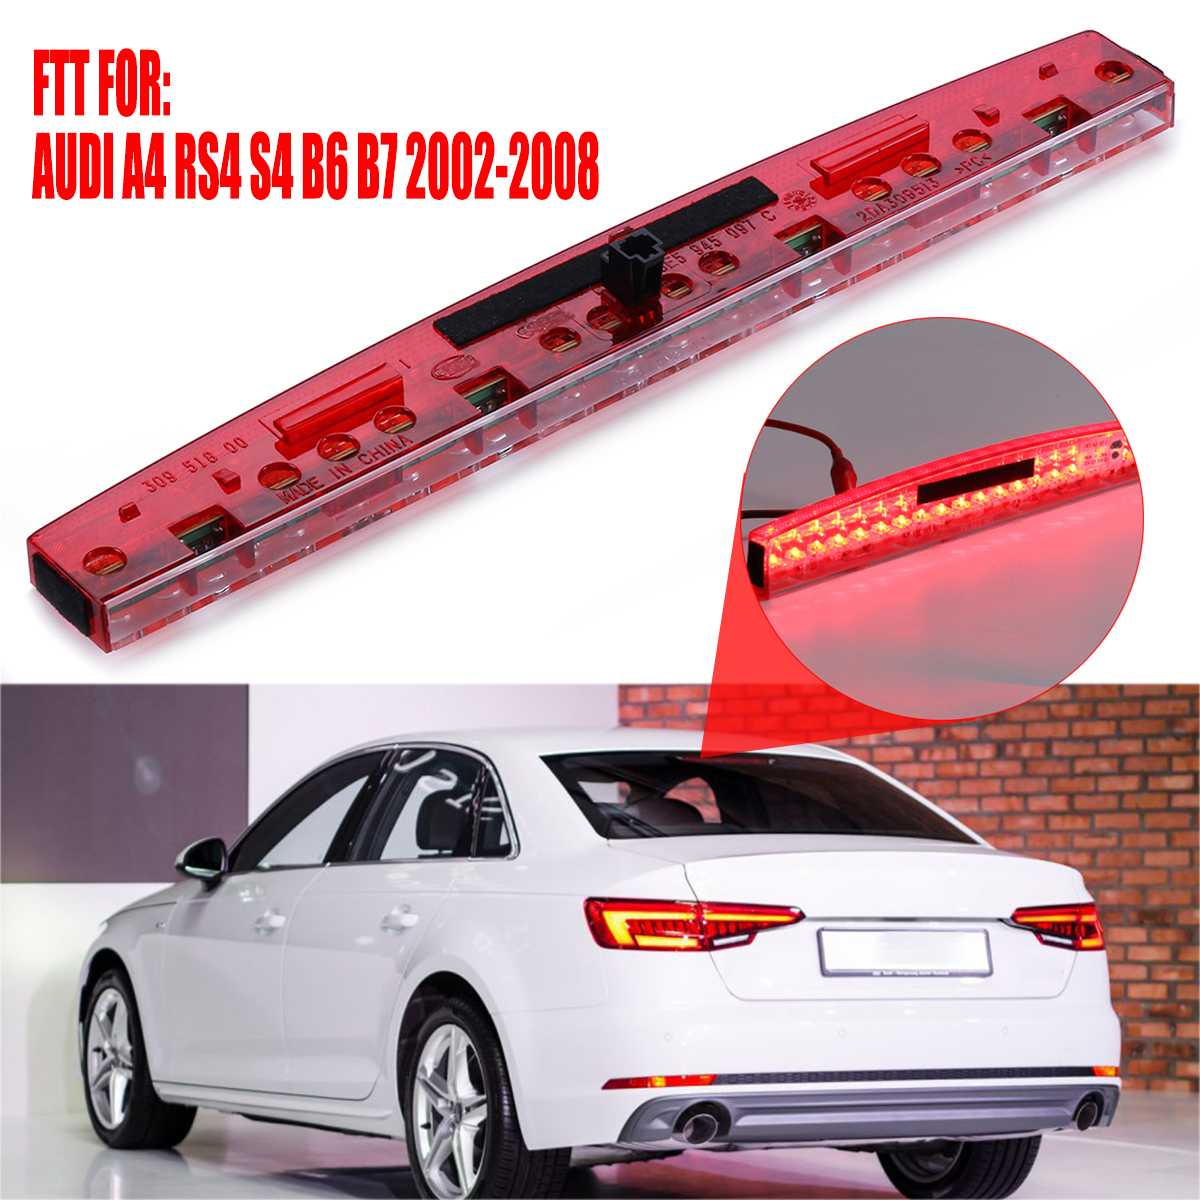 Car High Mount Third Brake Light Red Led Plastic Center Rear Stop Light Durable Taillight For AUDI A4 RS4 S4 B6 B7 2002 2008